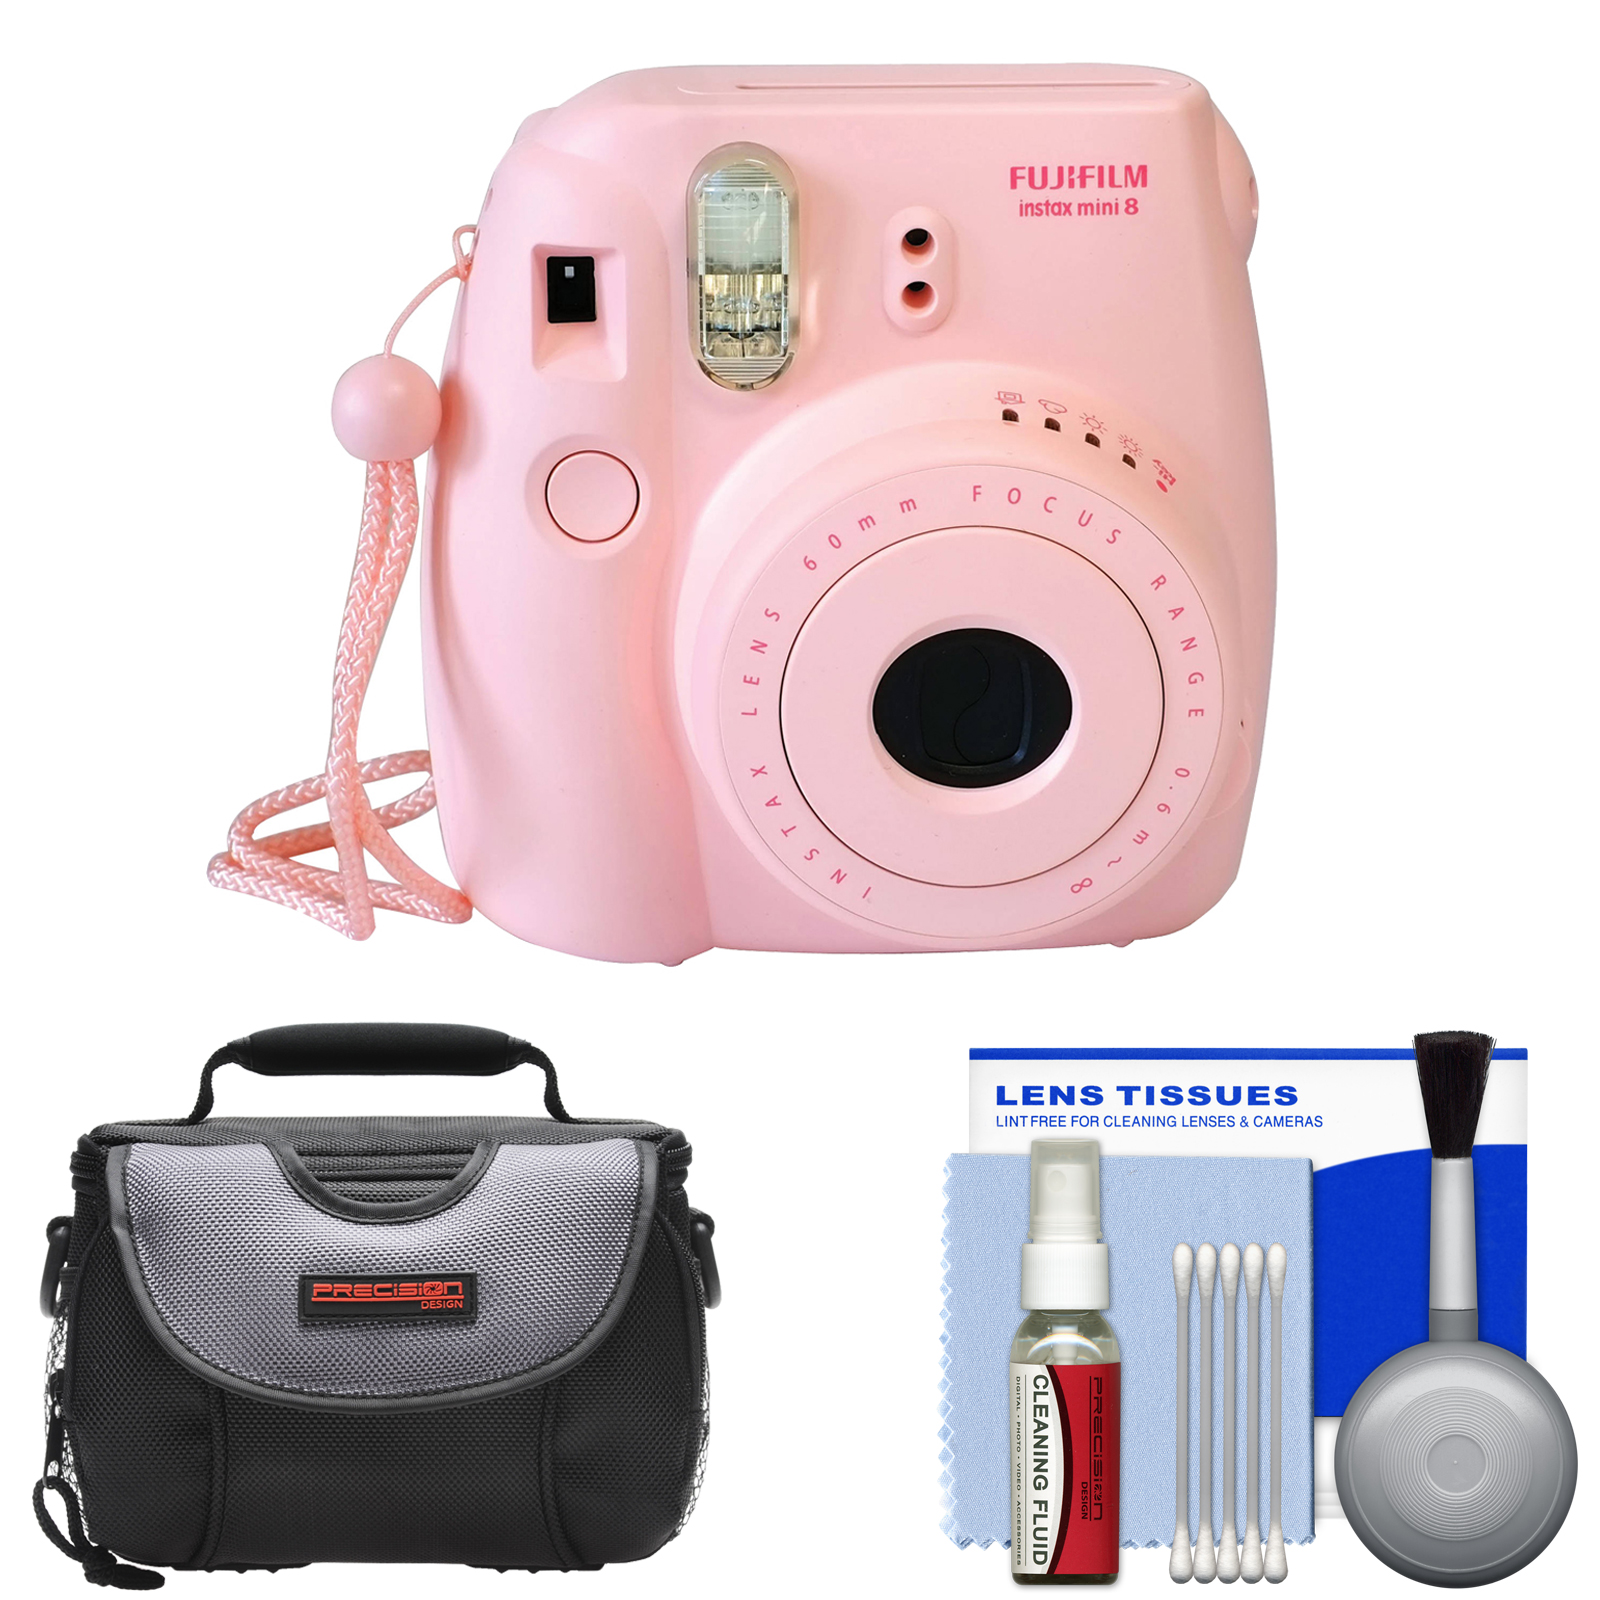 Fujifilm Instax Mini 8 Instant Film Camera (Pink) with Case + Cleaning Kit